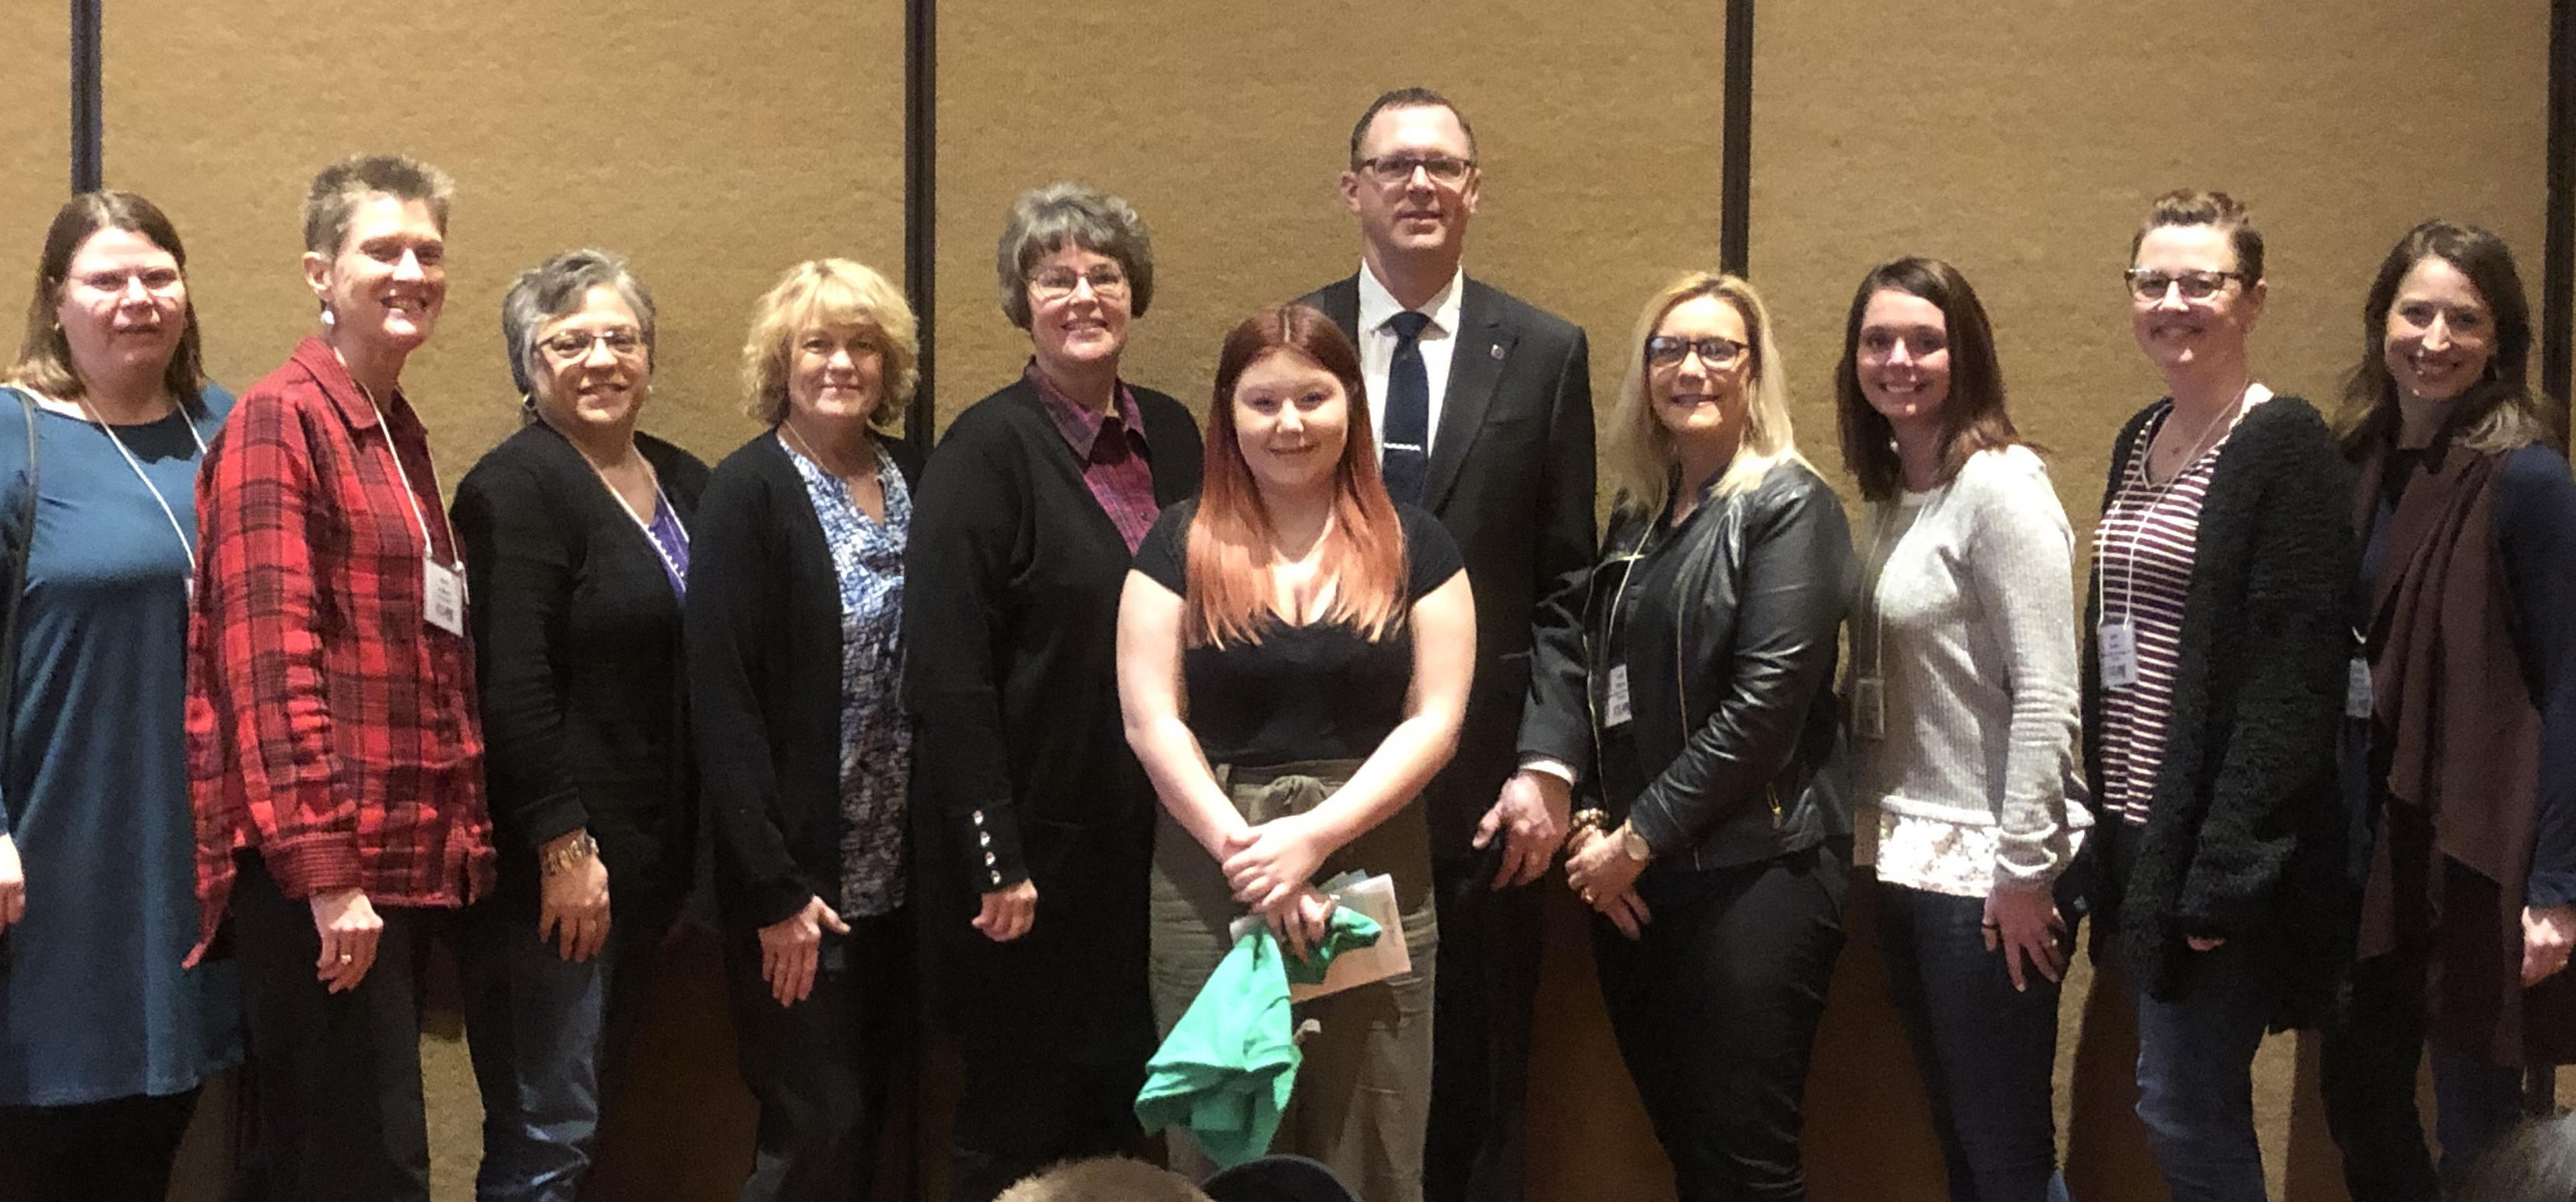 ROYALS student is honored at ICEARY Conference